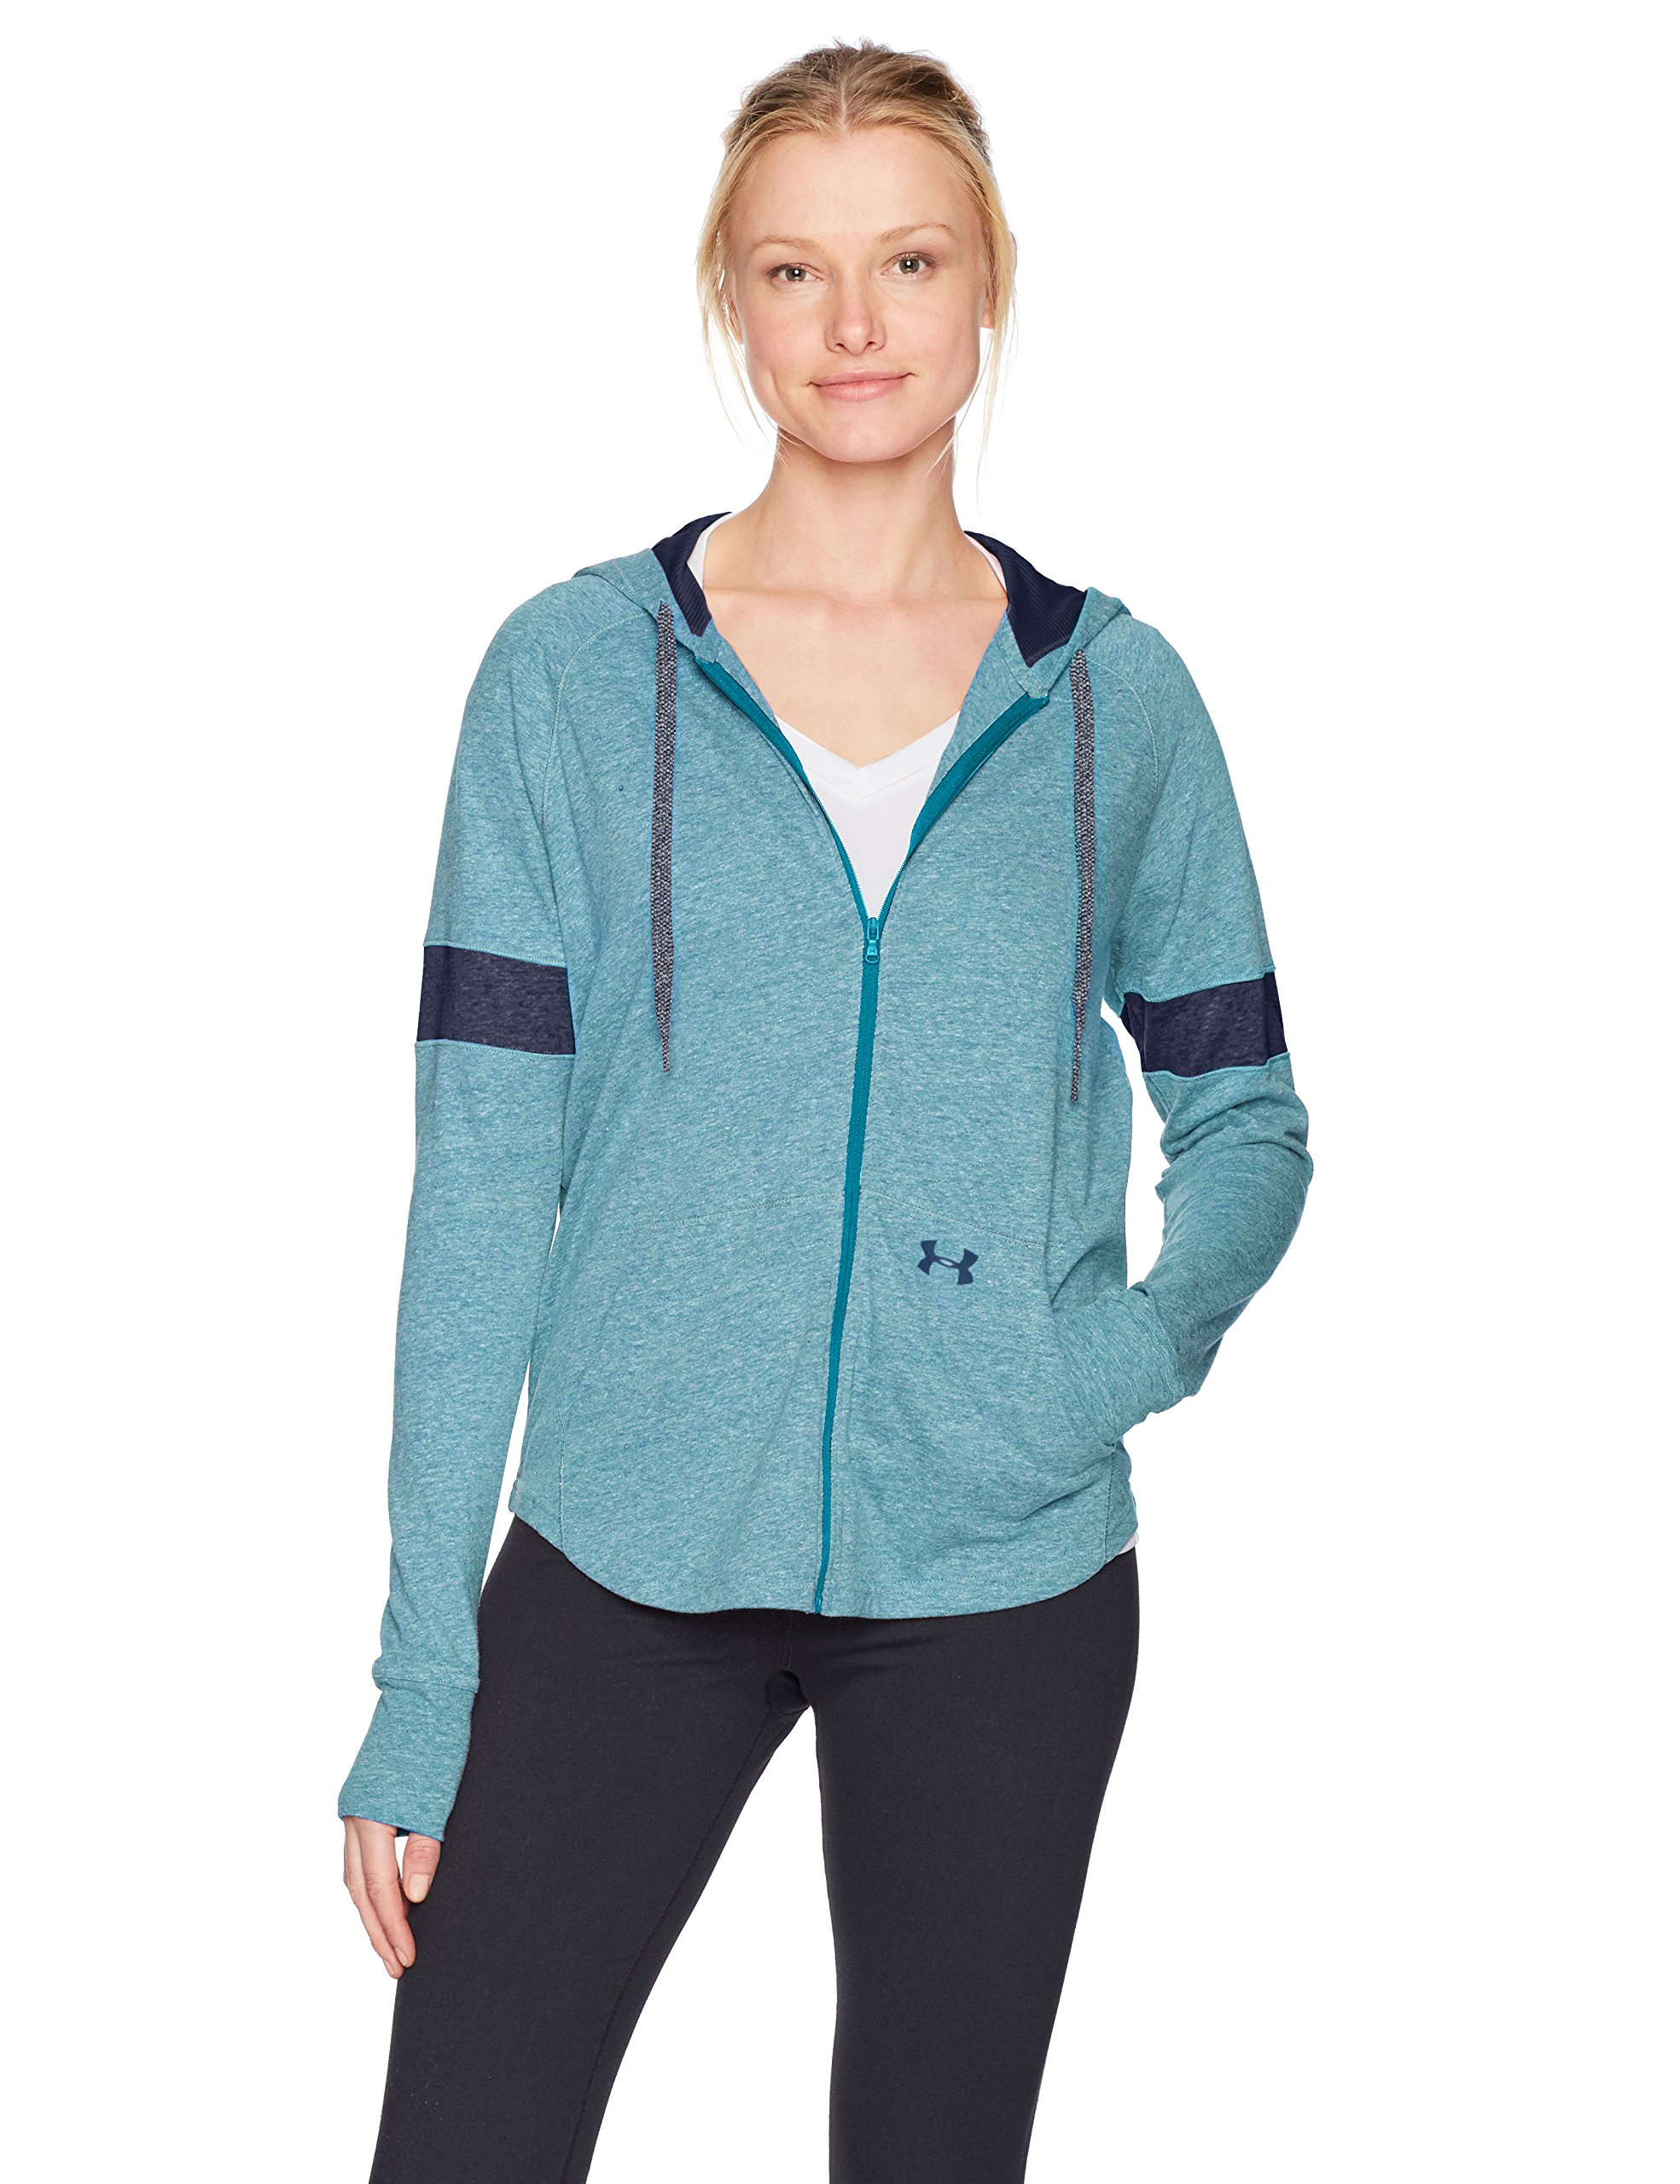 Under Armour Women's Sportstyle Full Zip Hoodie, Bayou Blue (953)/Midnight Navy, X-Small by Under Armour